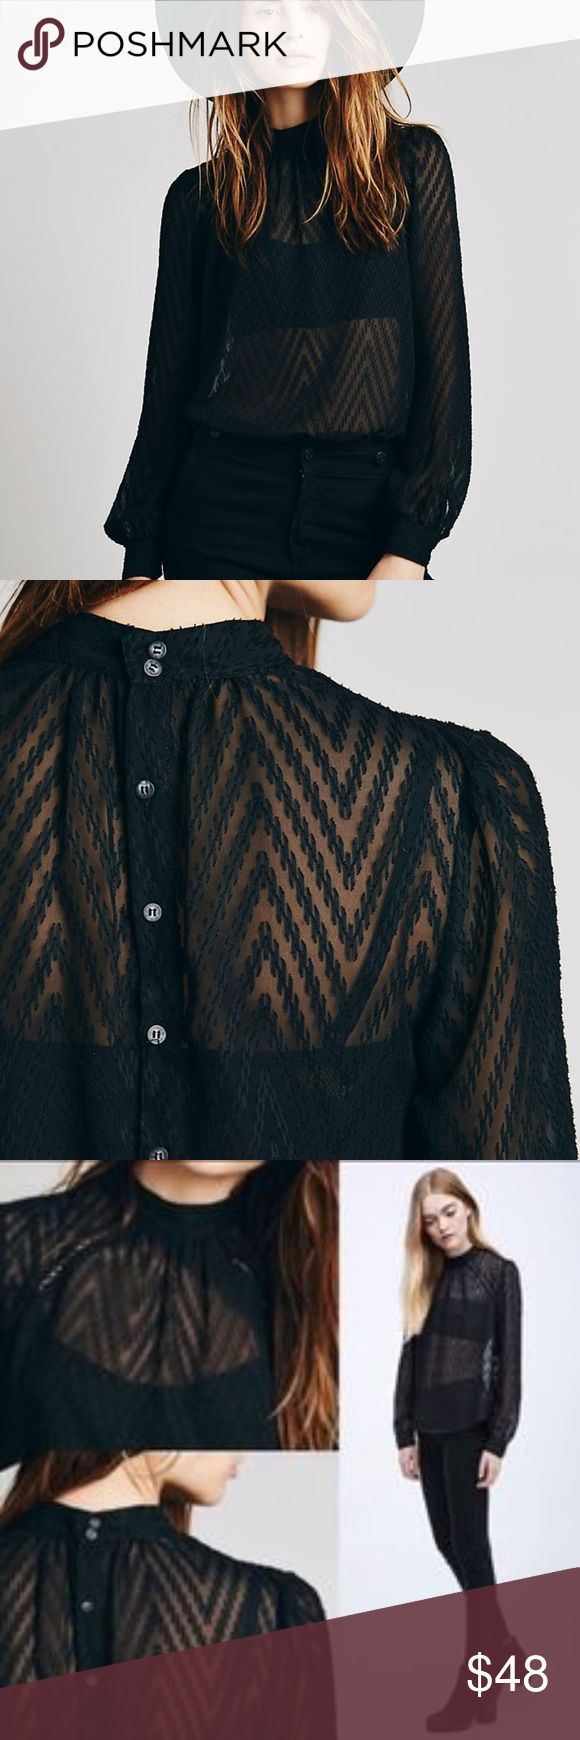 Free People Tucking Chevron Top (Black, S) Sheer mock neck blouse with a raised chevron pattern, gathered cuffs, and button back. Diagonal seams along the yoke feature net inserts. Machine Wash Cold. Like new. Free People Tops Blouses